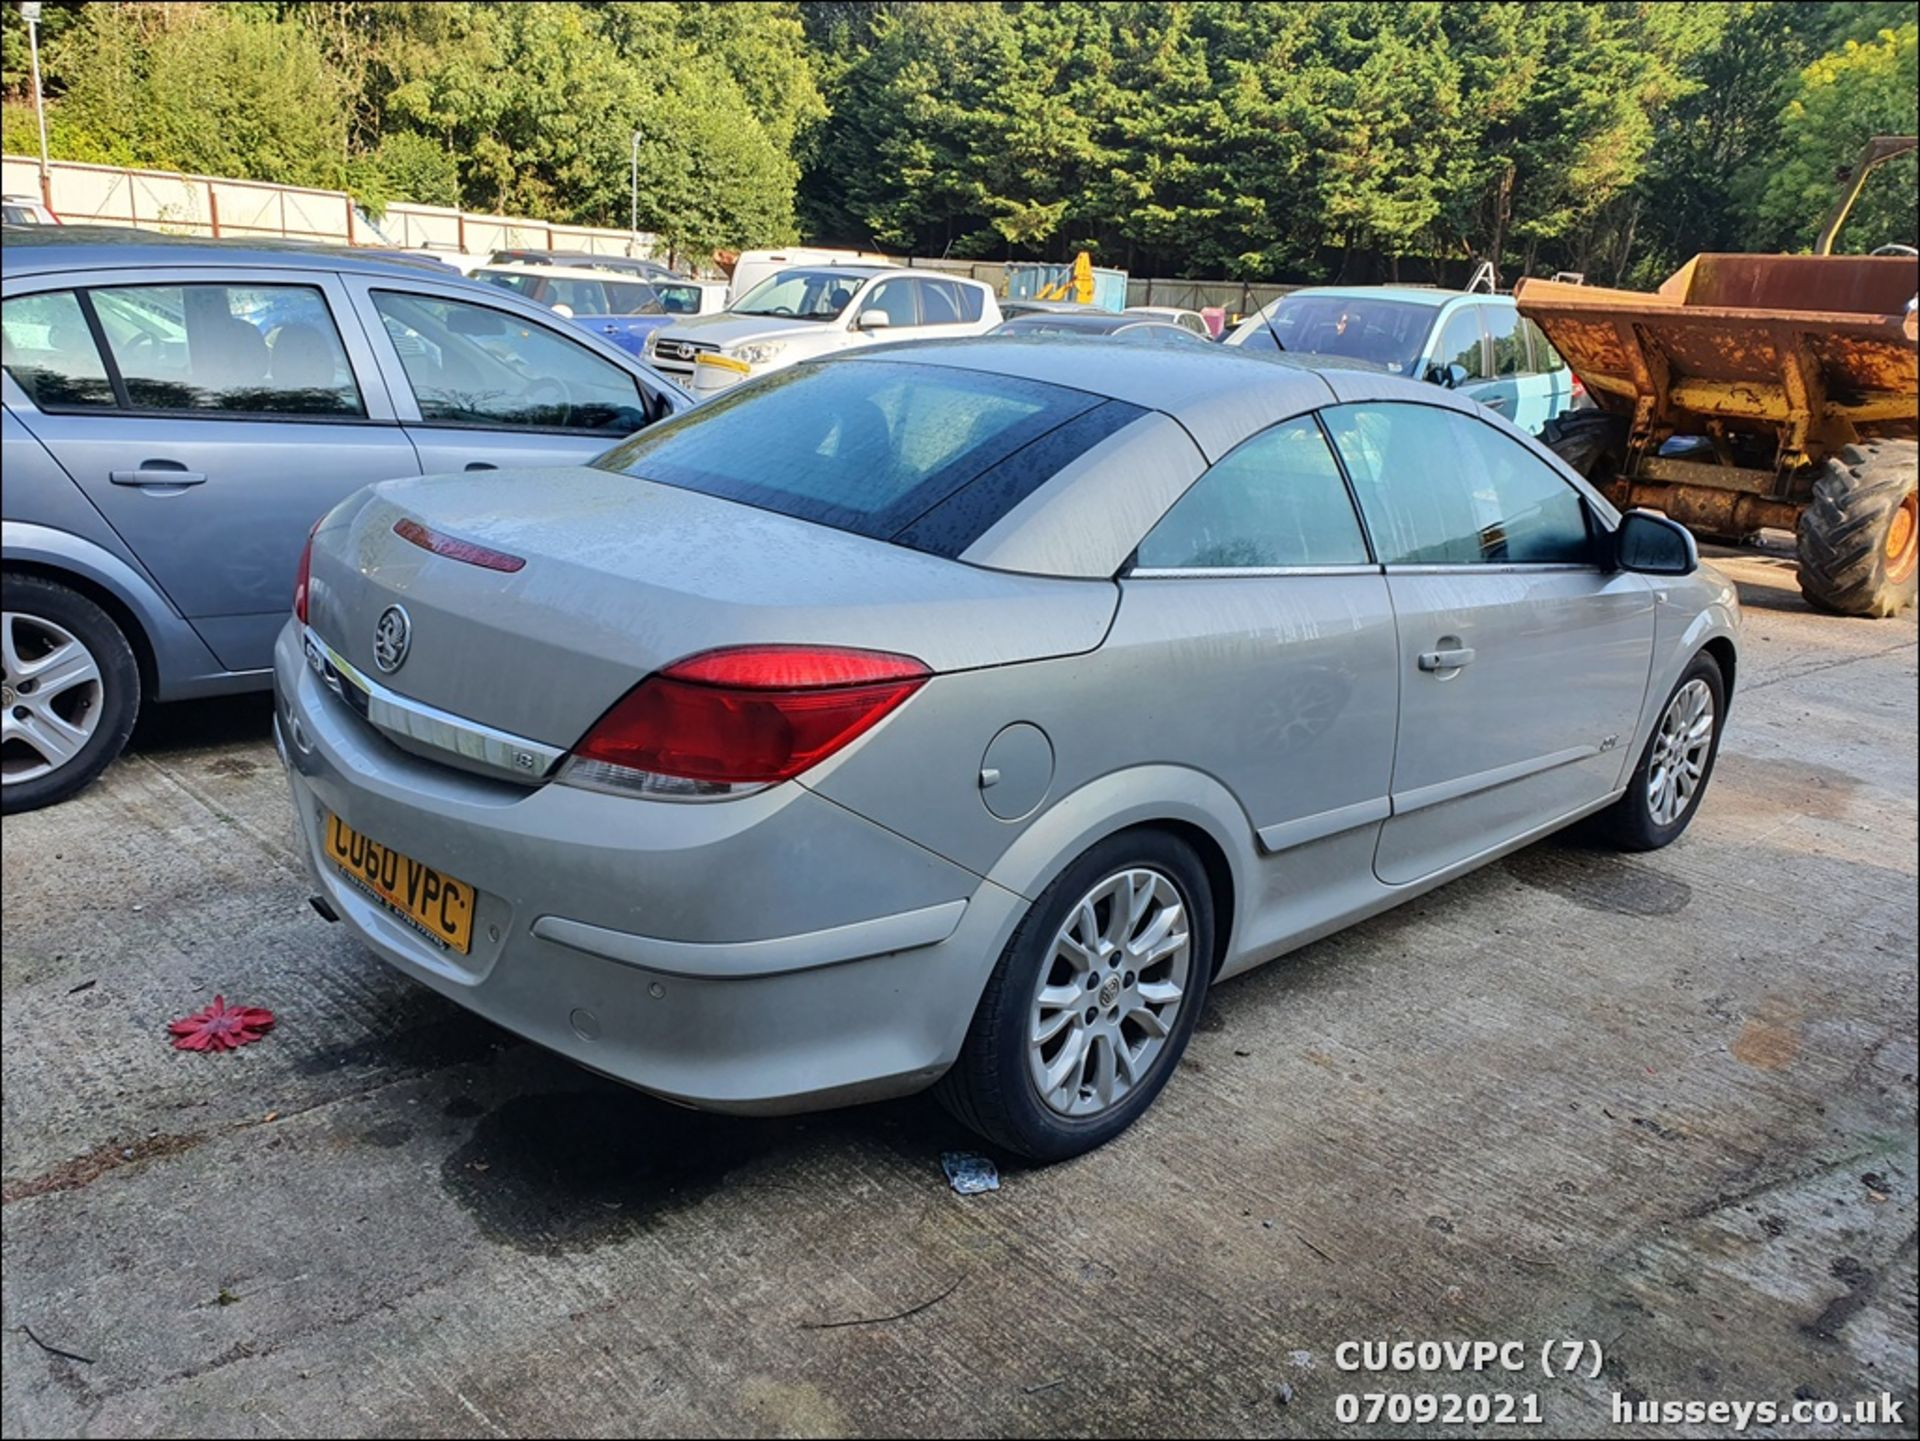 11/60 VAUXHALL ASTRA SPORT - 1796cc 2dr Convertible (Silver, 123k) - Image 7 of 12